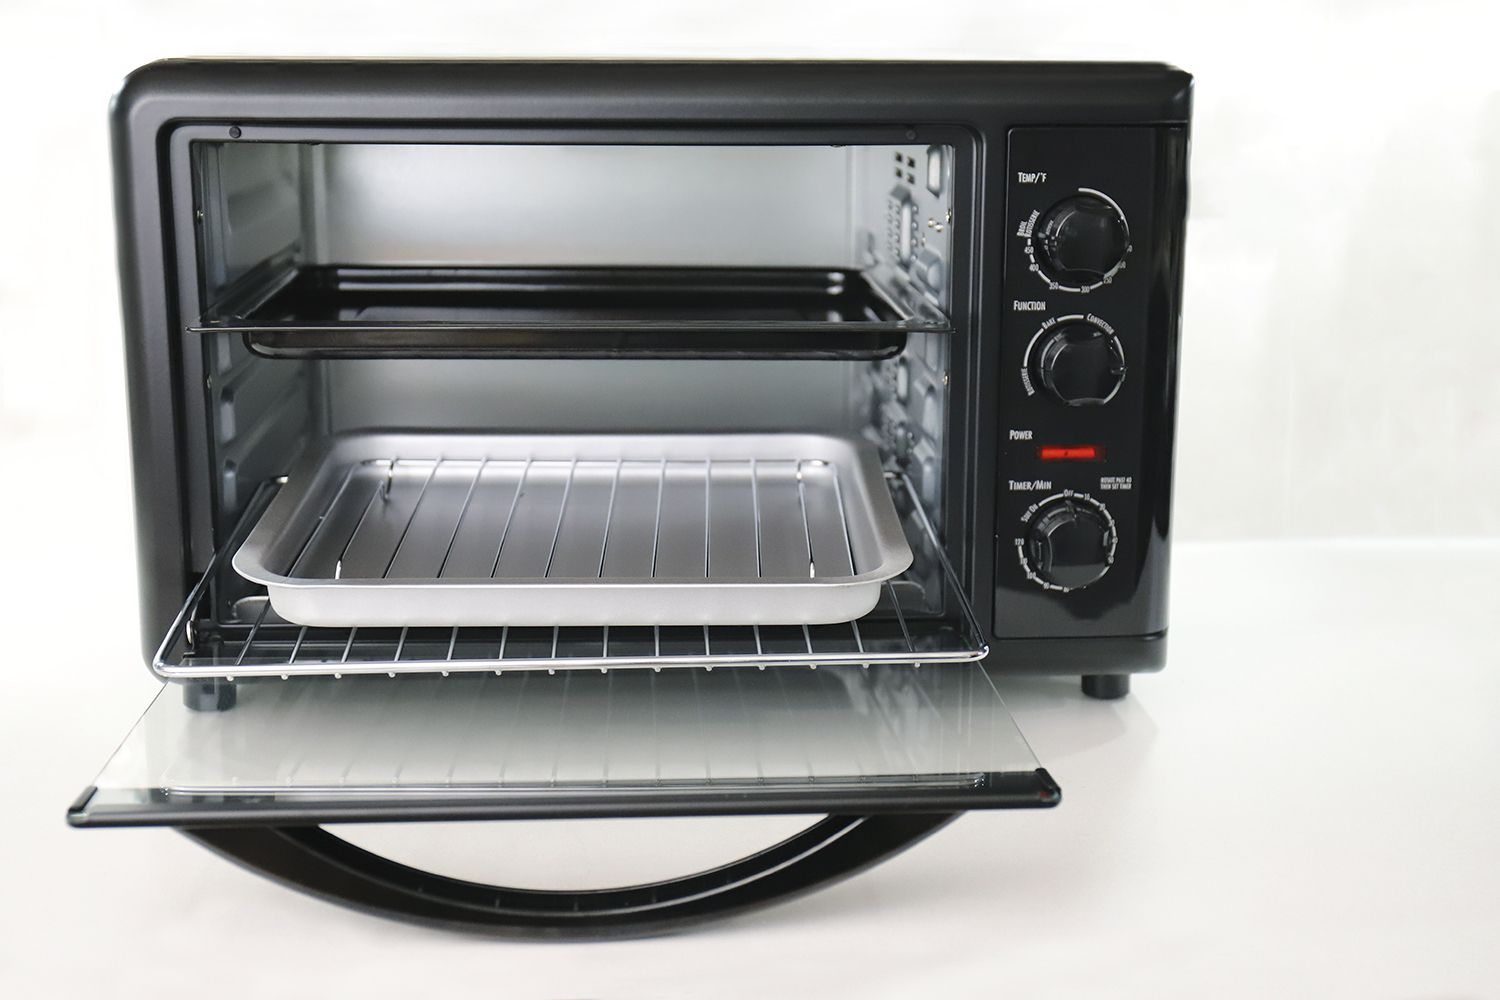 Hamilton Beach Countertop Oven With Convection and Rotisserie 31104D